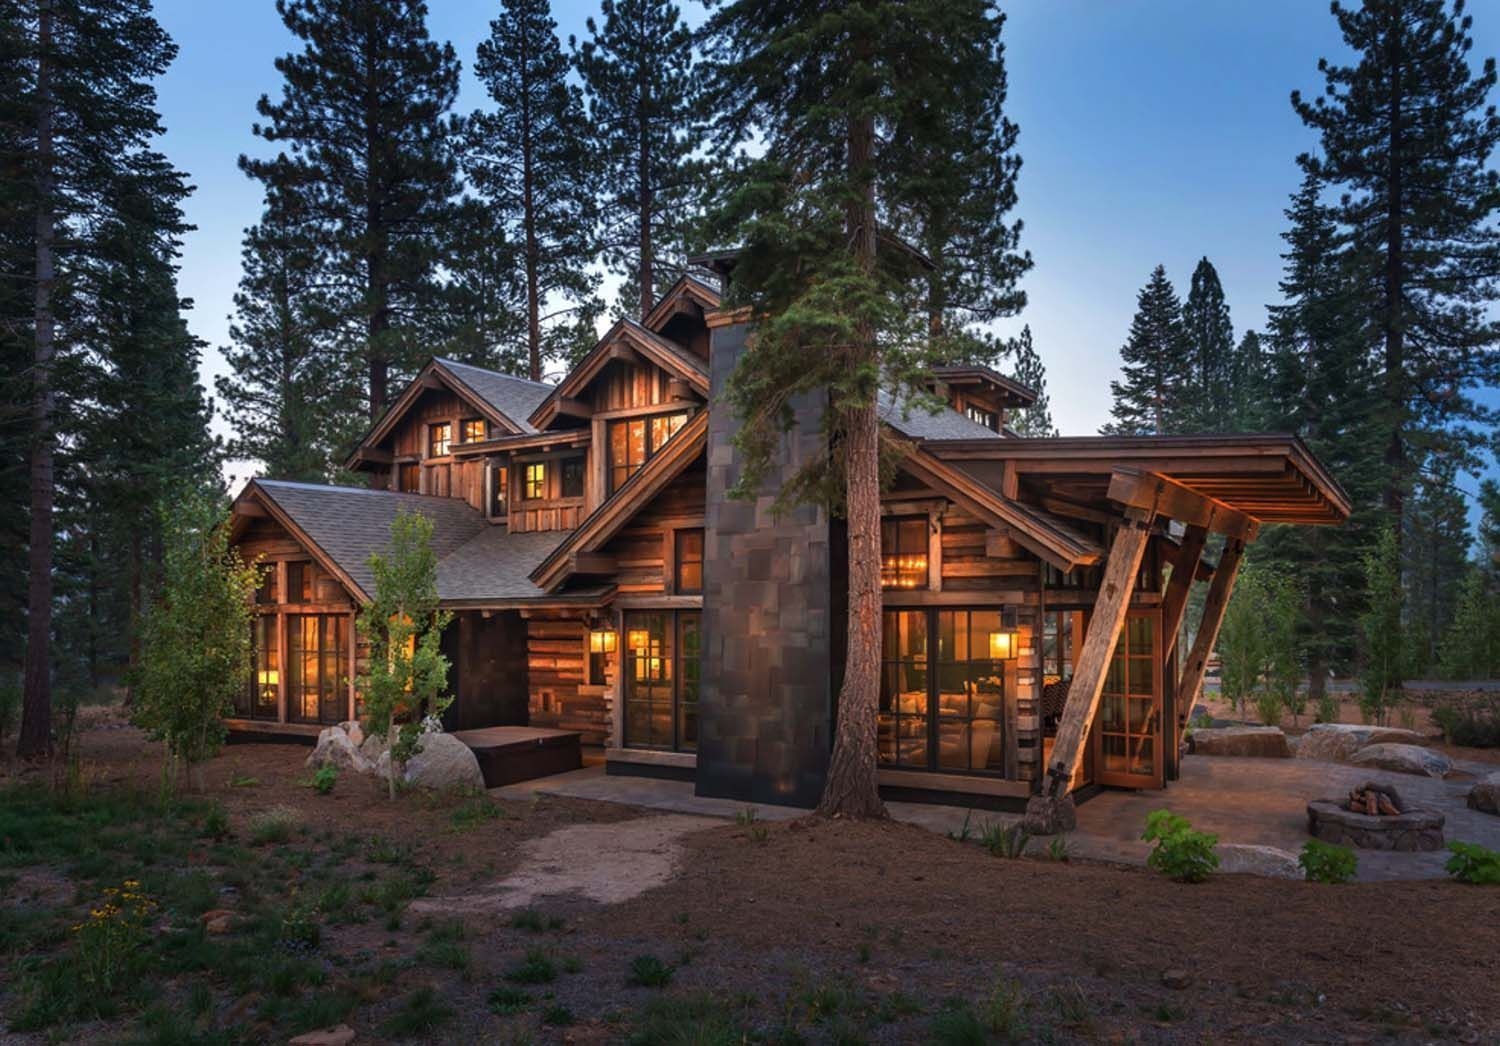 cozy mountain style cabin getaway in martis camp on modern cozy mountain home design ideas id=97684